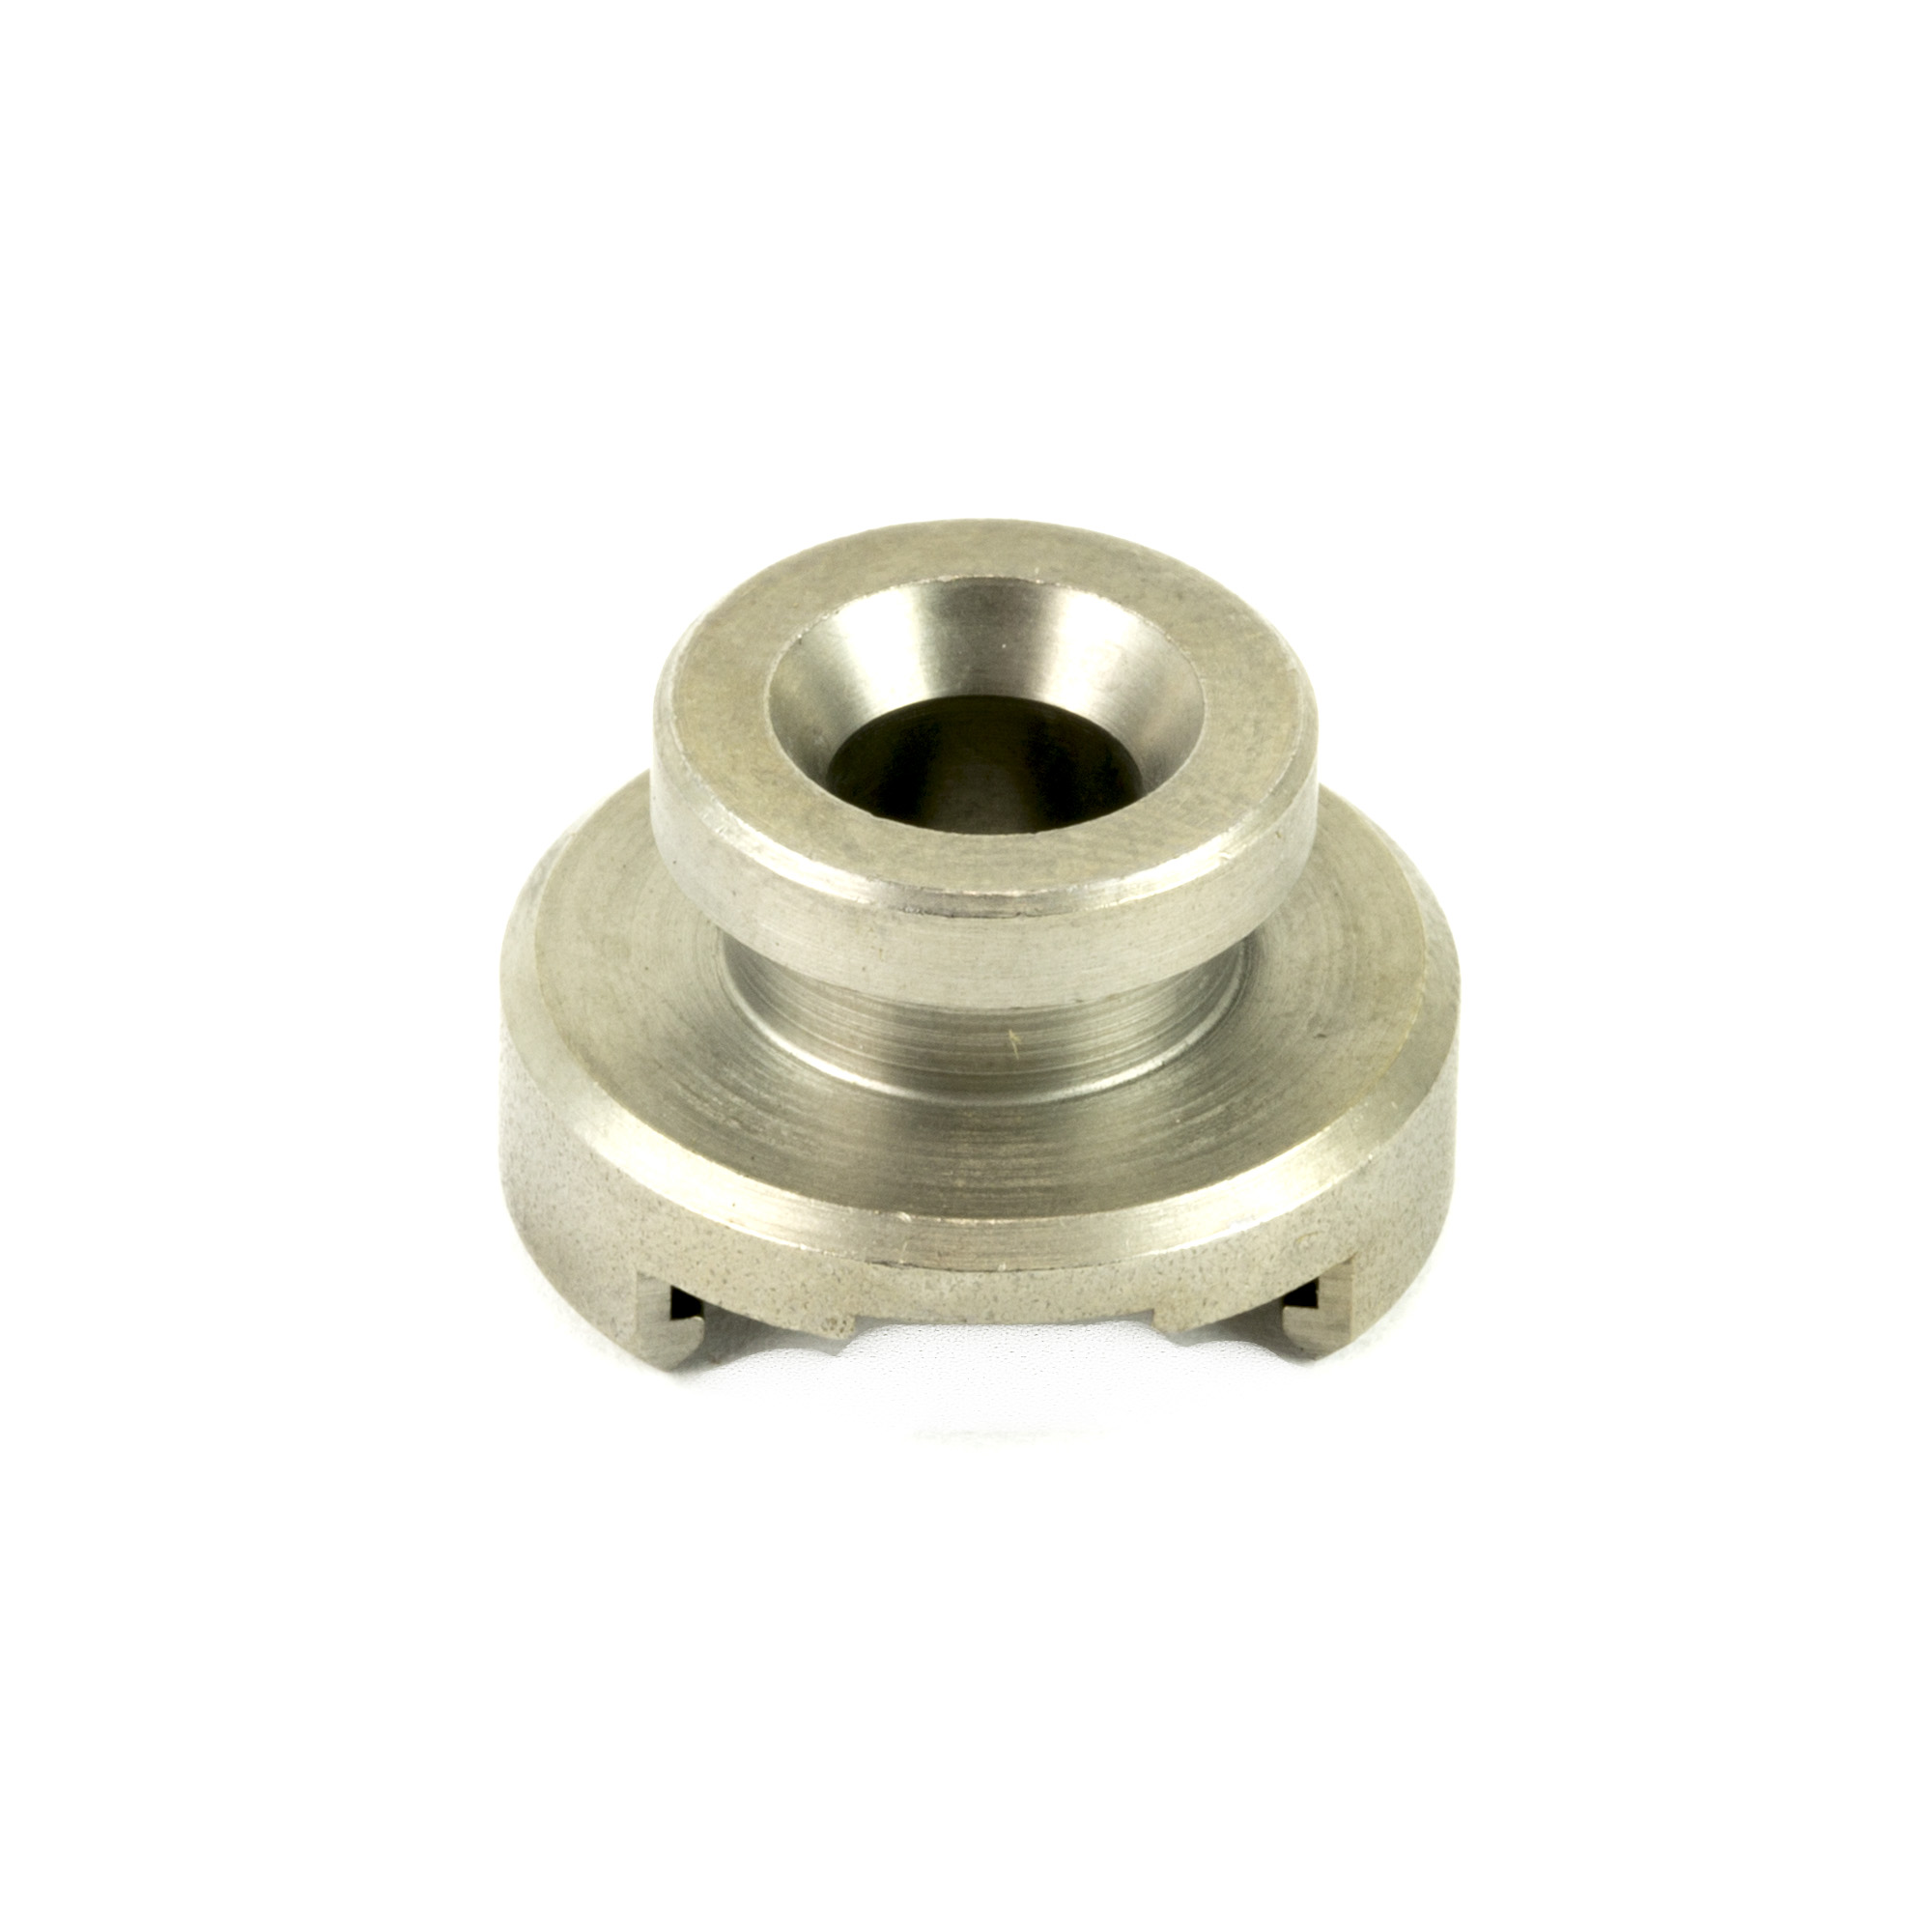 RCBS(R) Single Stage shell holders are built from hardened steel and designed to properly align the case with the reloading die in single-stage and turret presses.